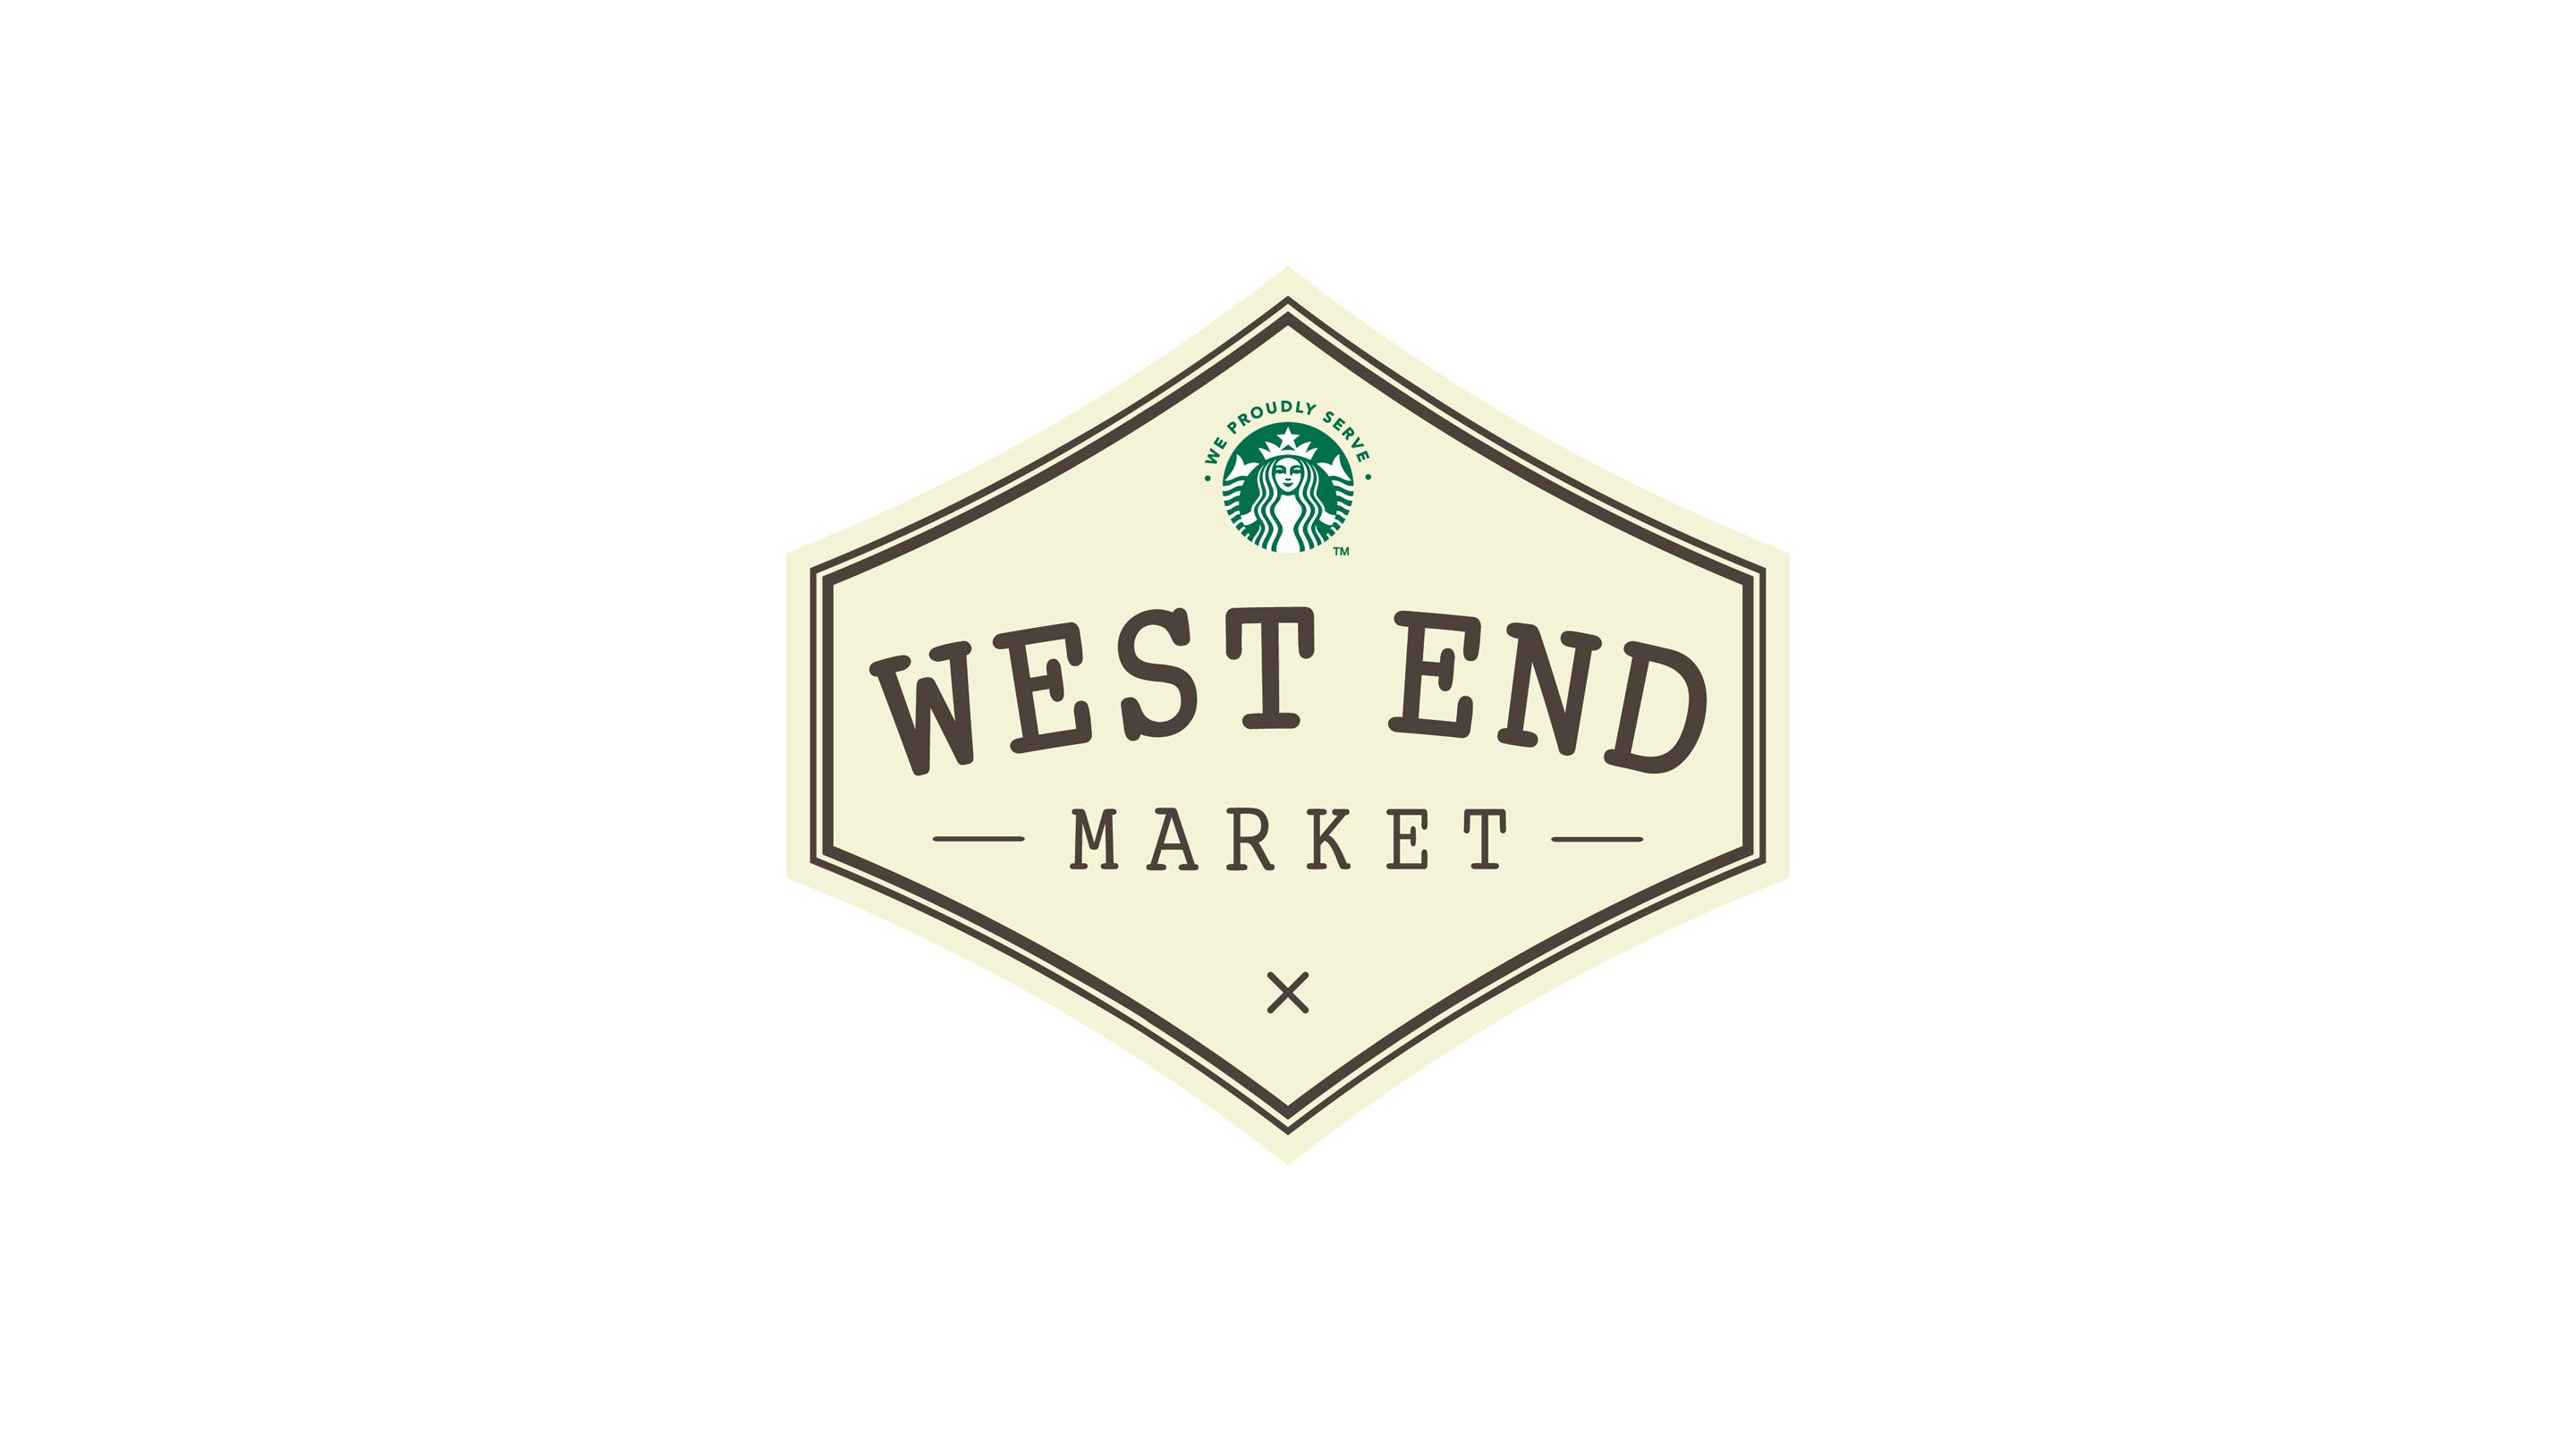 West End Market logo.